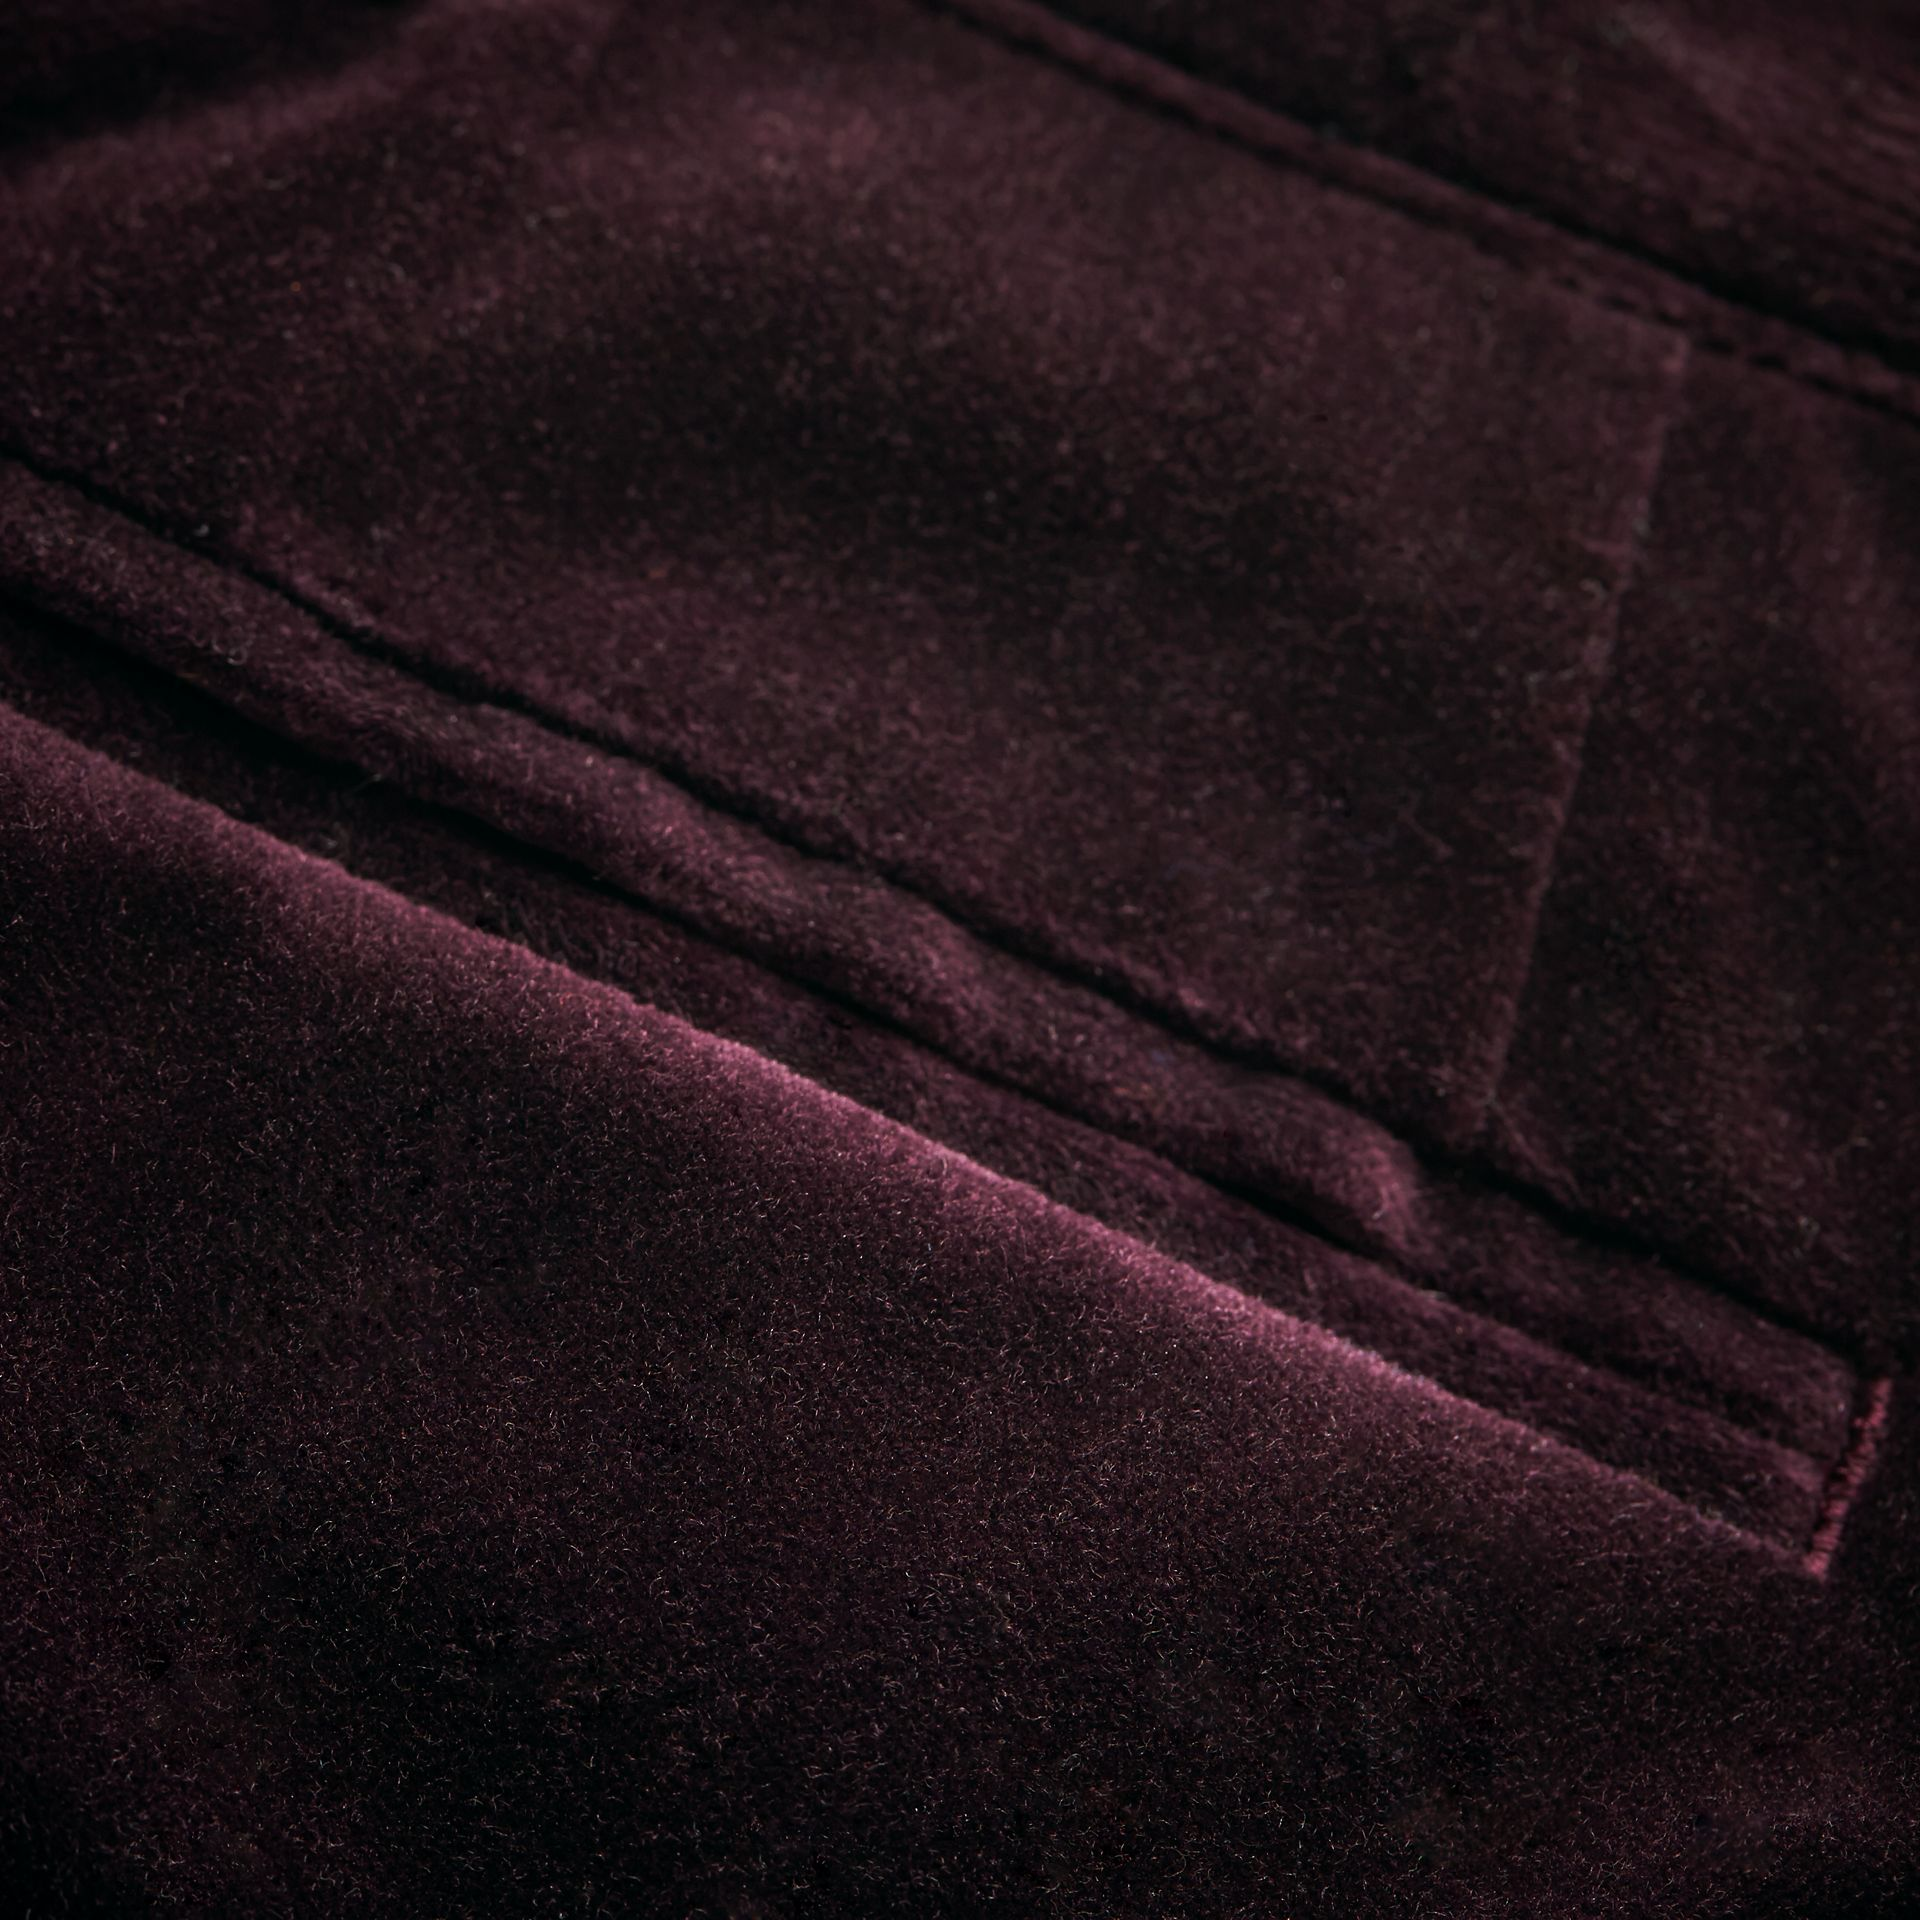 Velvet Tuxedo Trousers in Black Currant | Burberry - gallery image 1